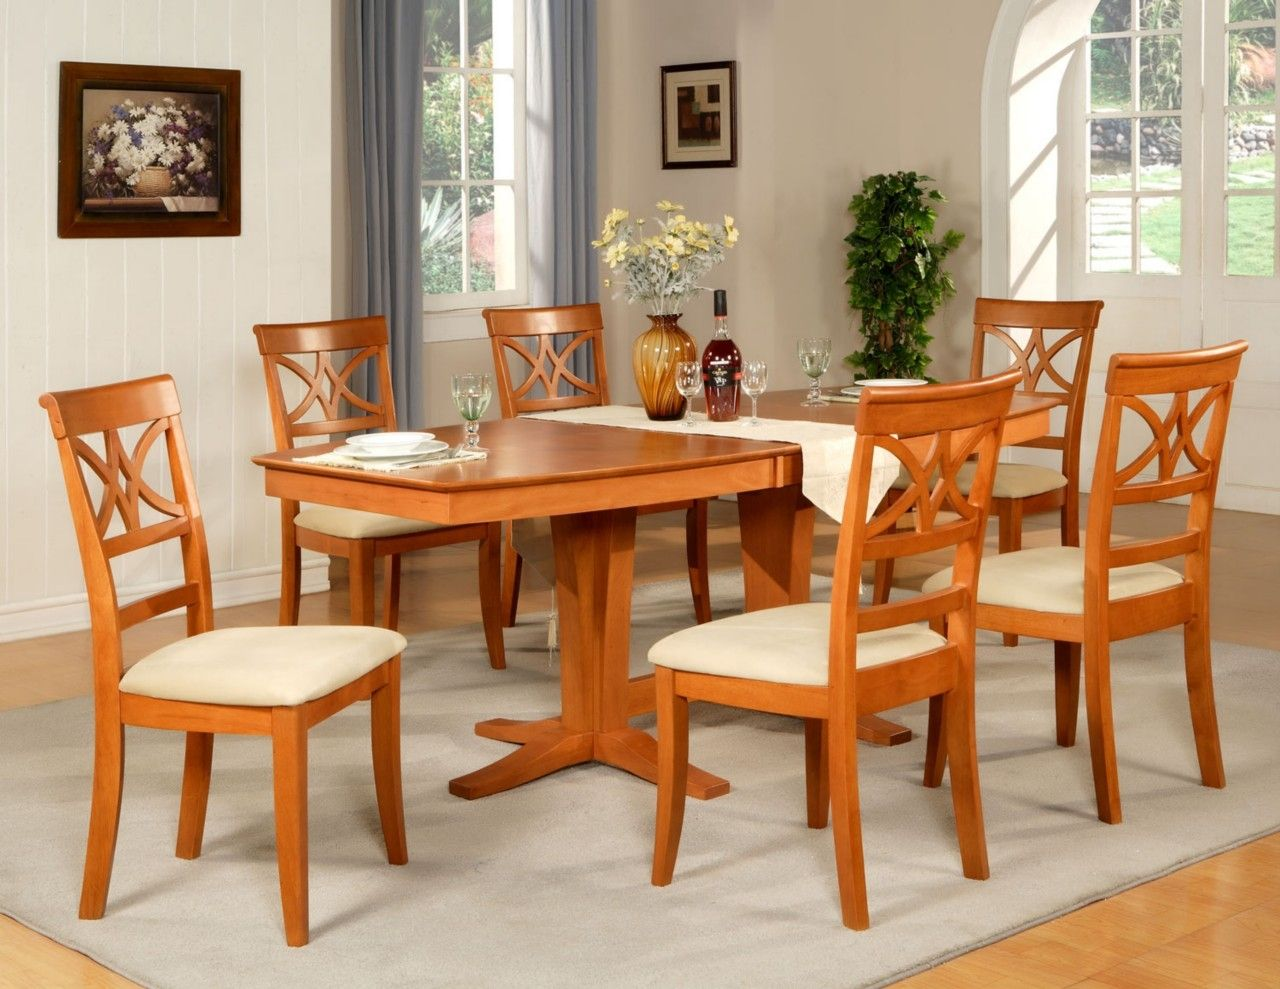 Dining table chairs pictures